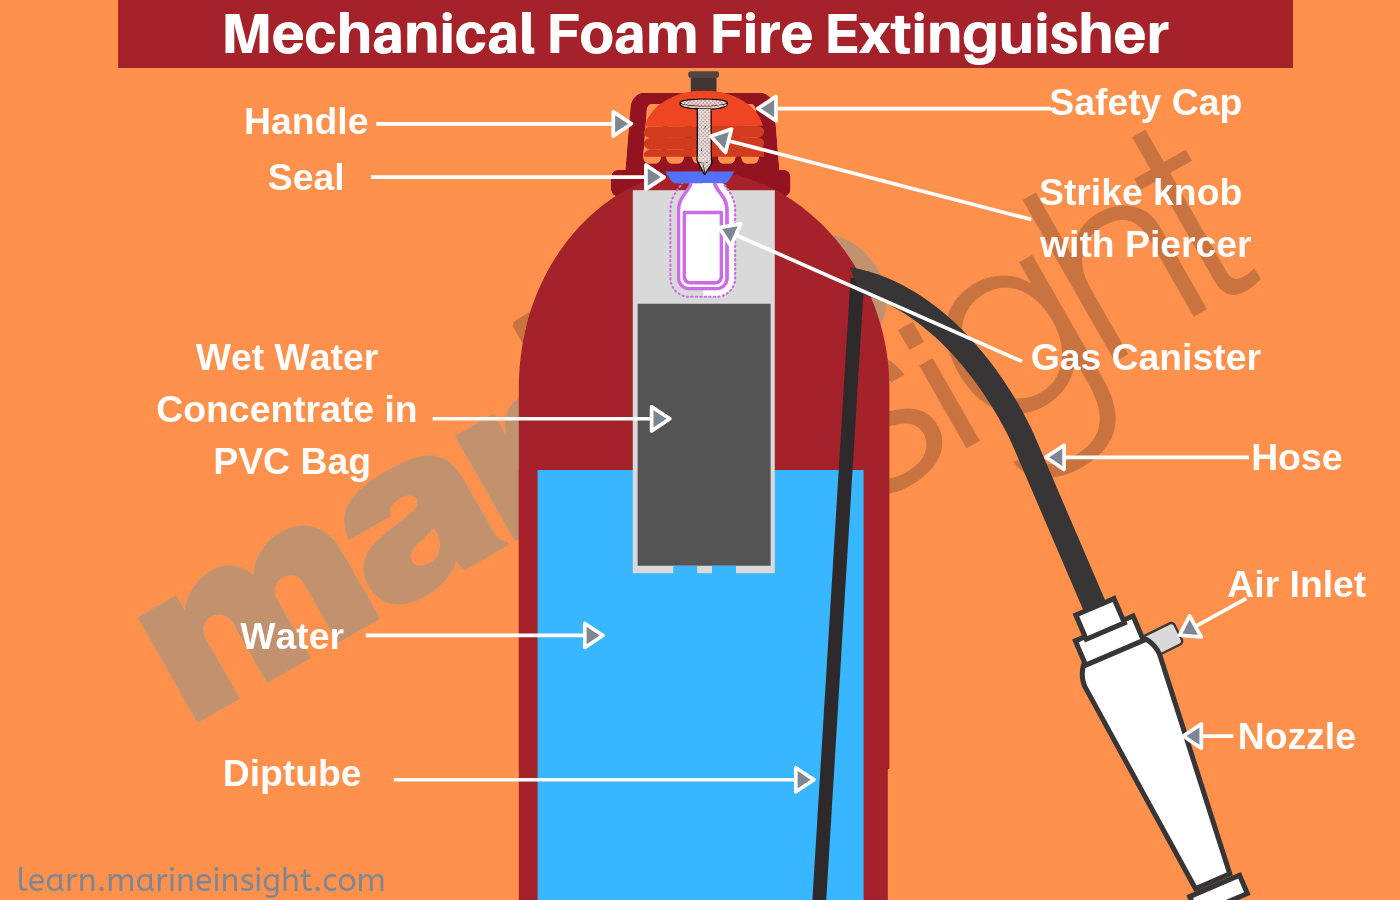 hight resolution of mechanical foam type fire extinguisher diagram showing different foam extinguisher parts